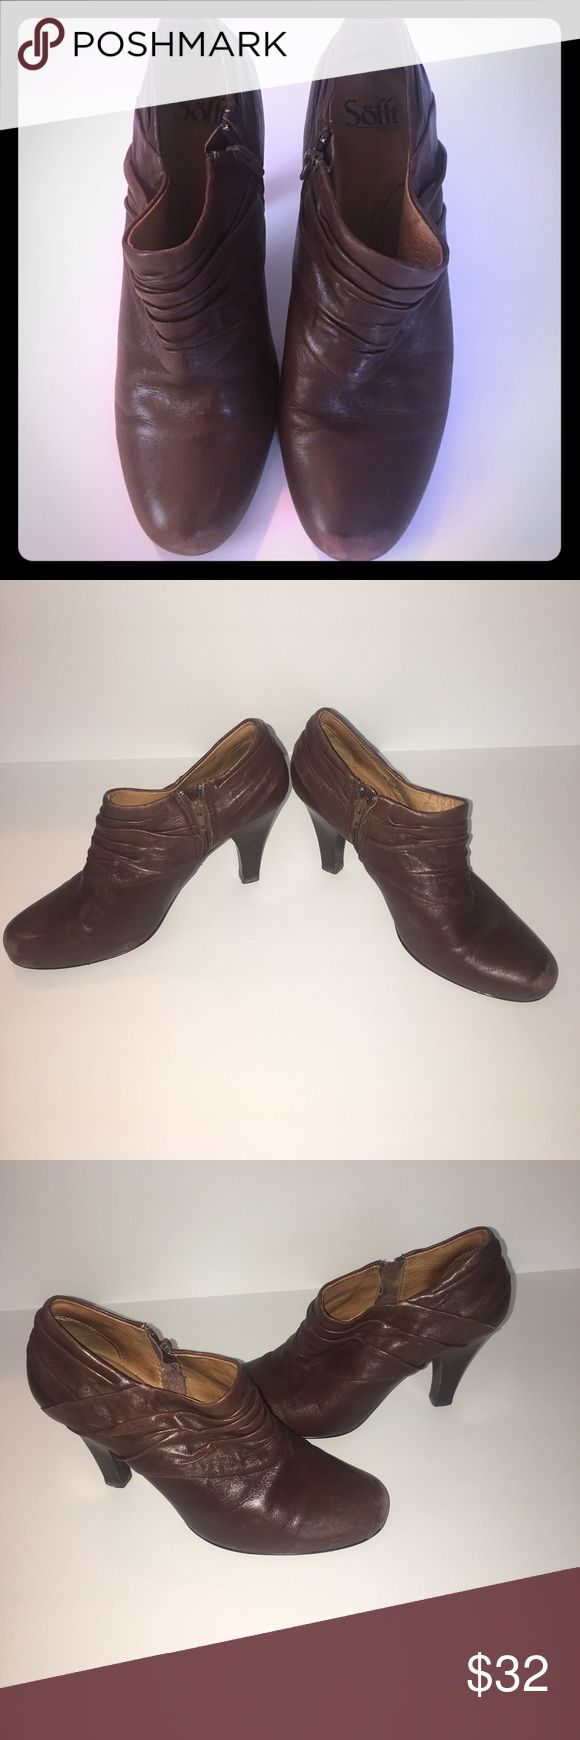 Sofft Brown Ankle Booties Sofft size 9 Brown Leather Ruched Ankle Booties Sofft Shoes Ankle Boots & Booties